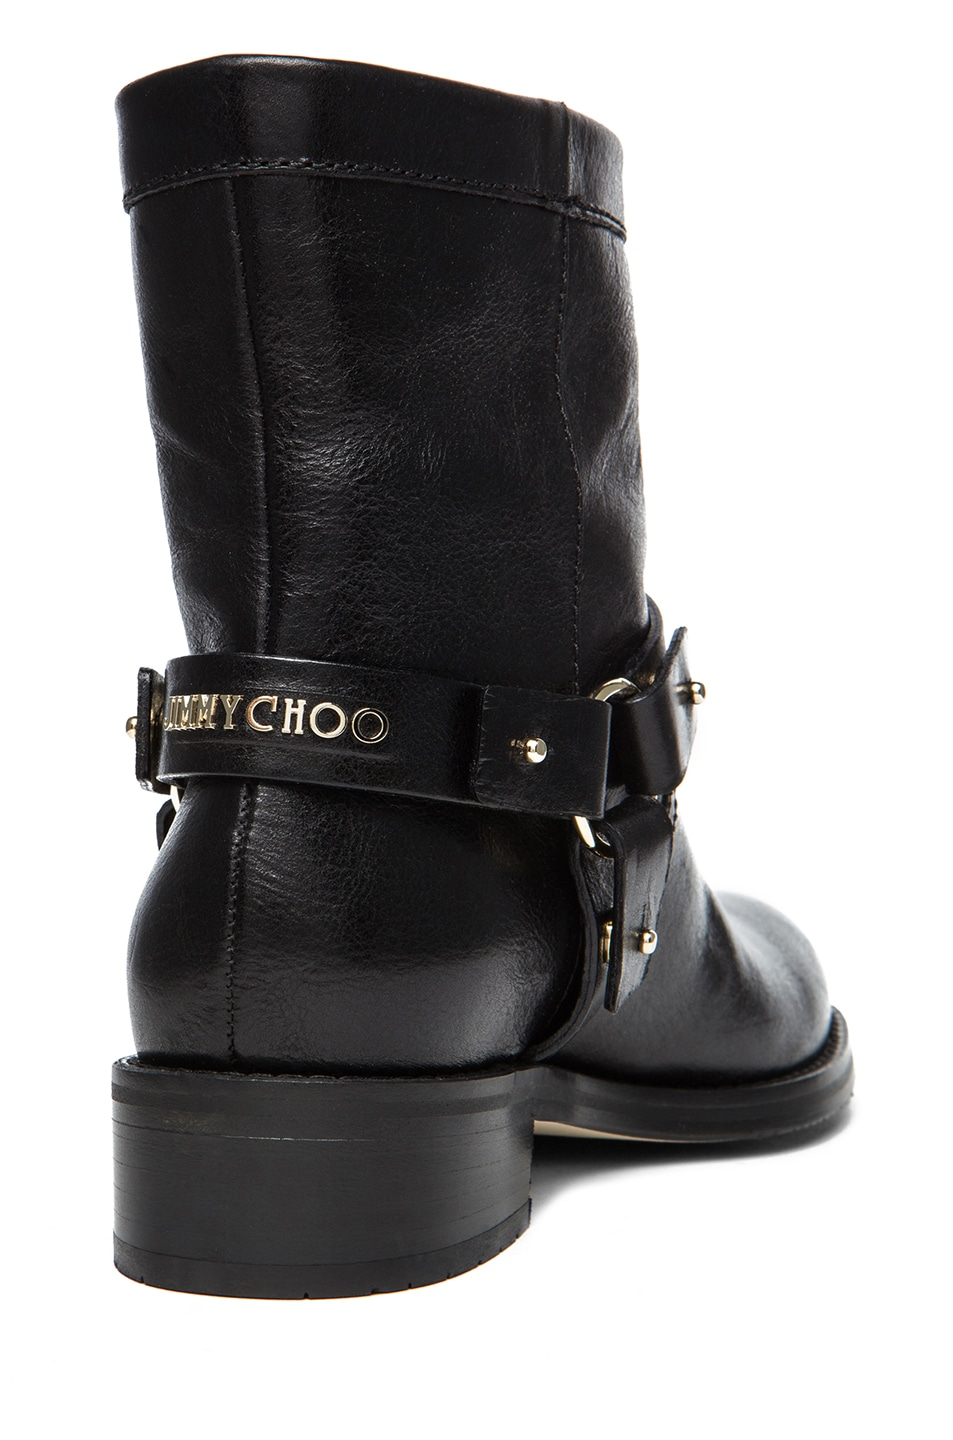 Image 3 of Jimmy Choo Dixie Shiny Calfskin Leather Flat Ankle Boot in Black